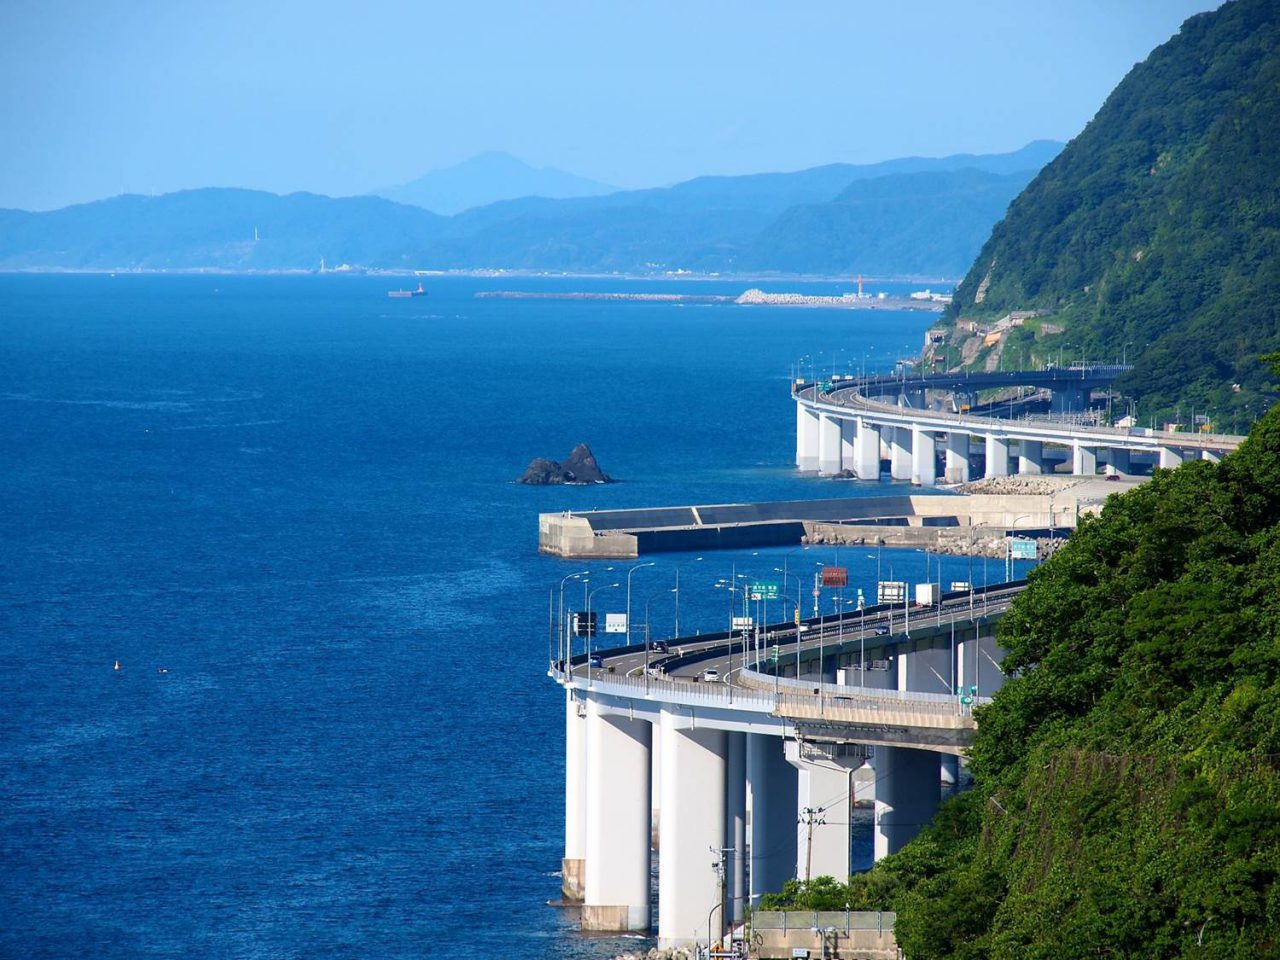 The Hokuriku Expressway winds through the Cliffs